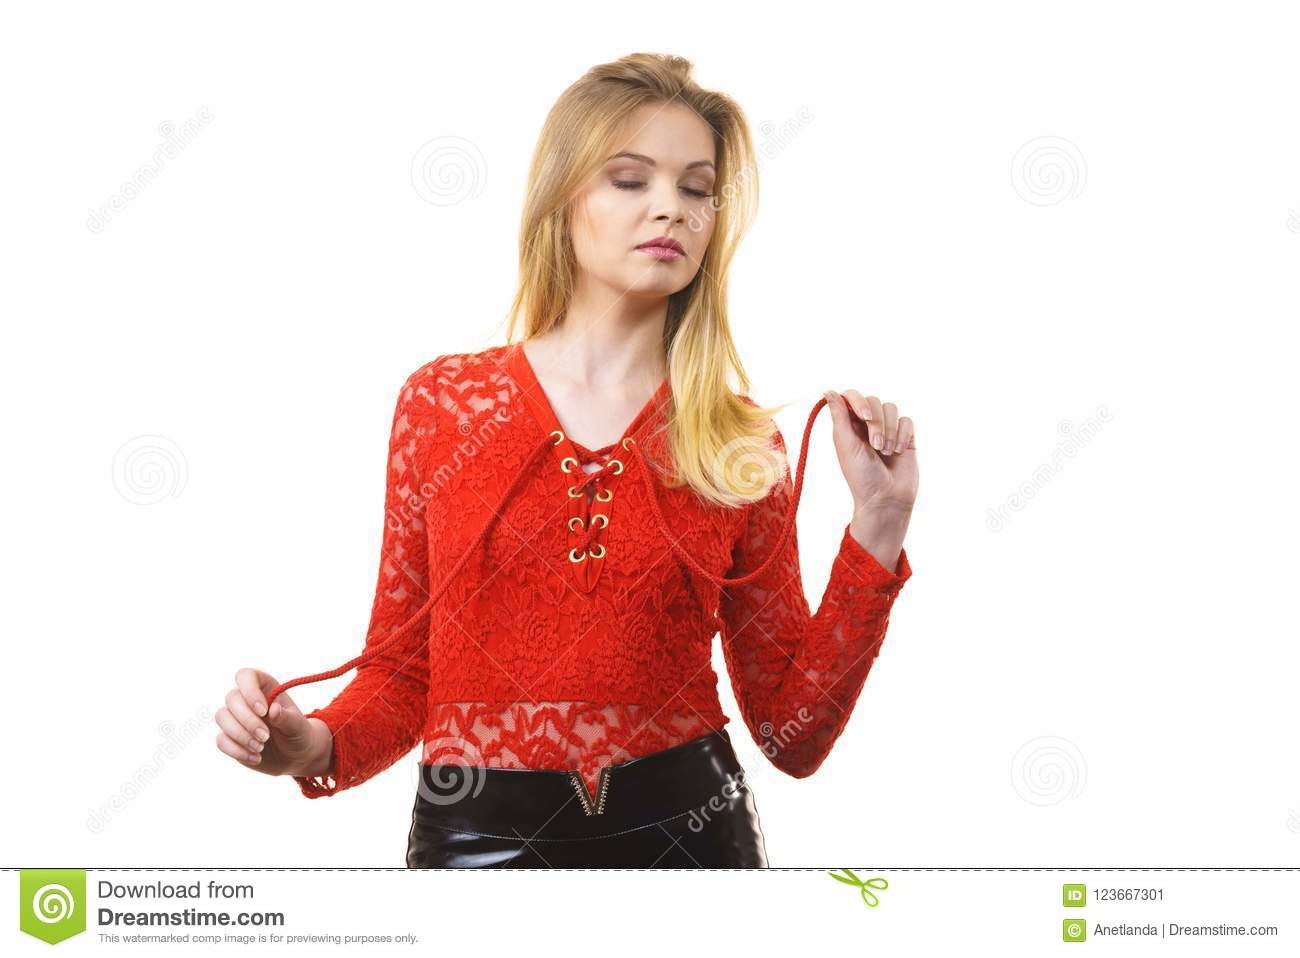 6cc0e147602 Elegant young woman wearing red lace top. Female presentig stylish  fashionable outfit.